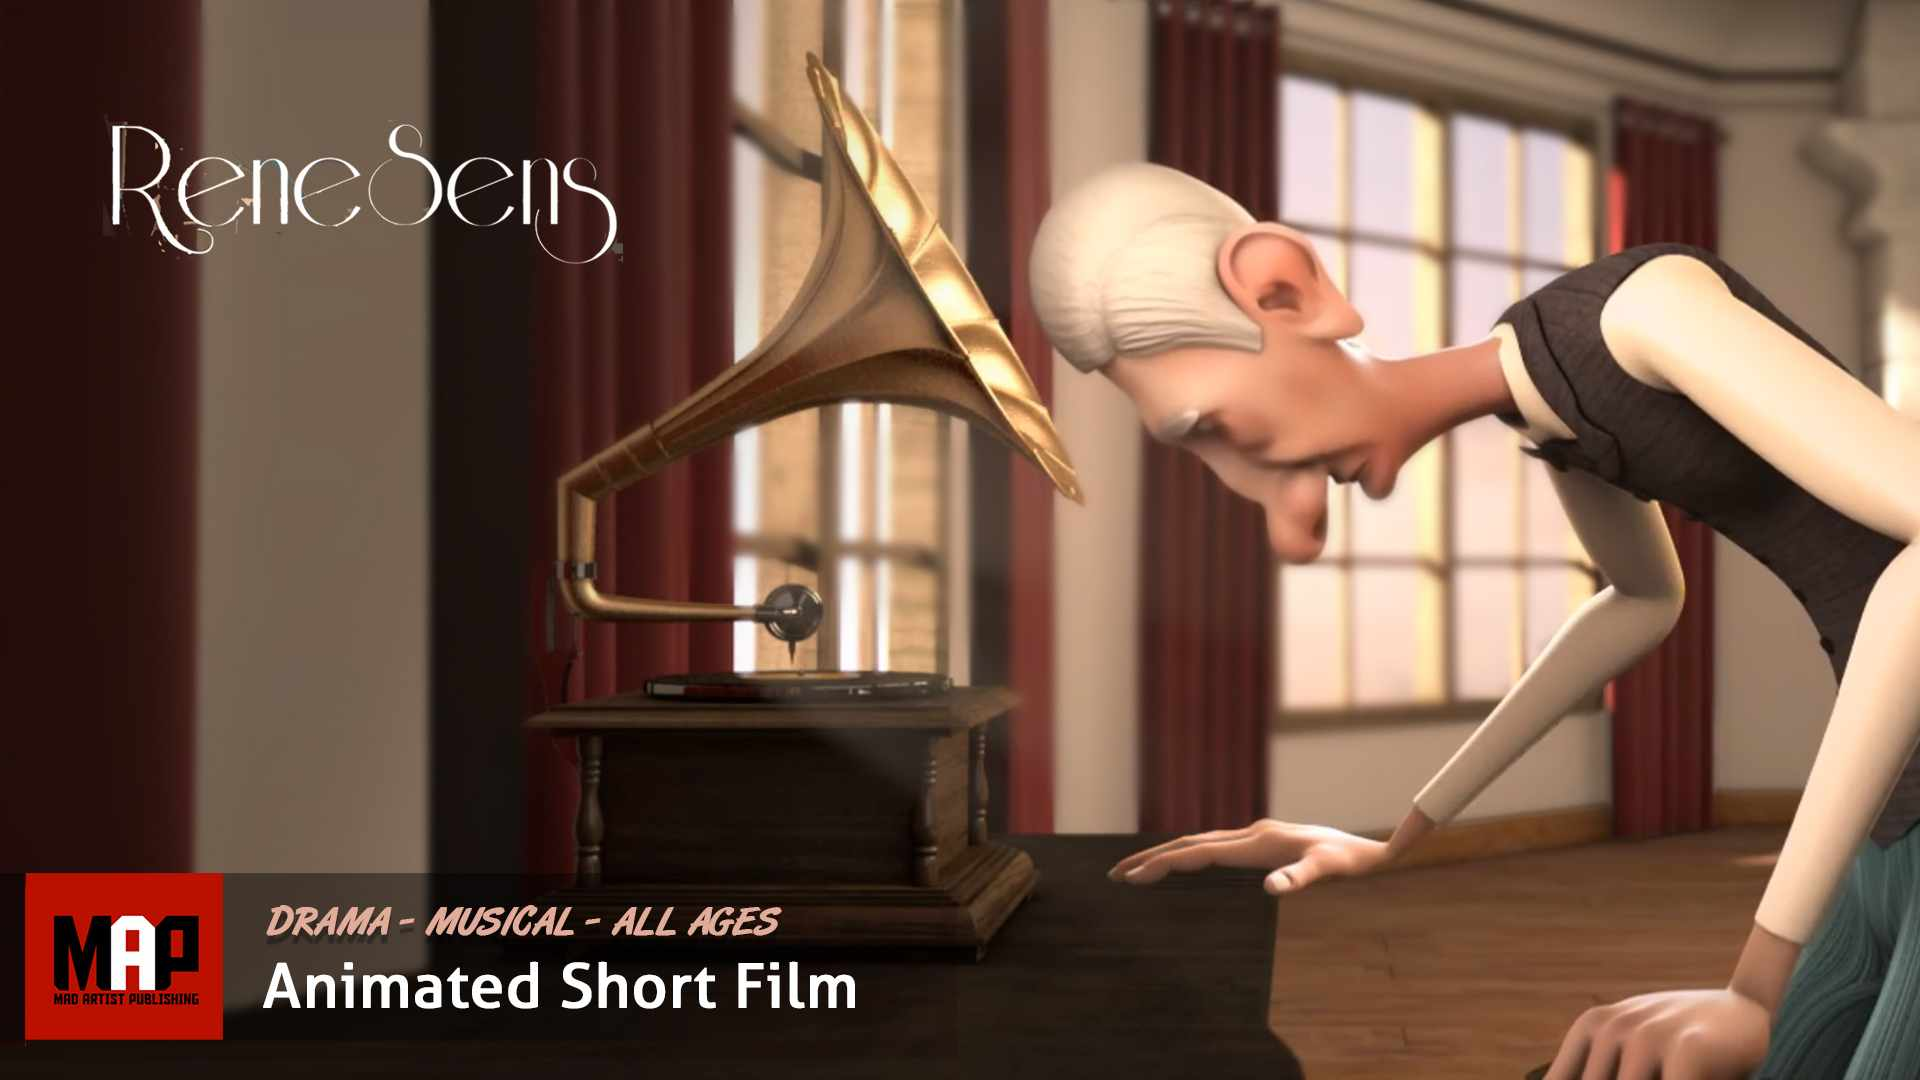 Musical Drama CGI 3D Animated Short Film ** RENESENS ** Animation by Simon Loisel  Supinfocom Rubika